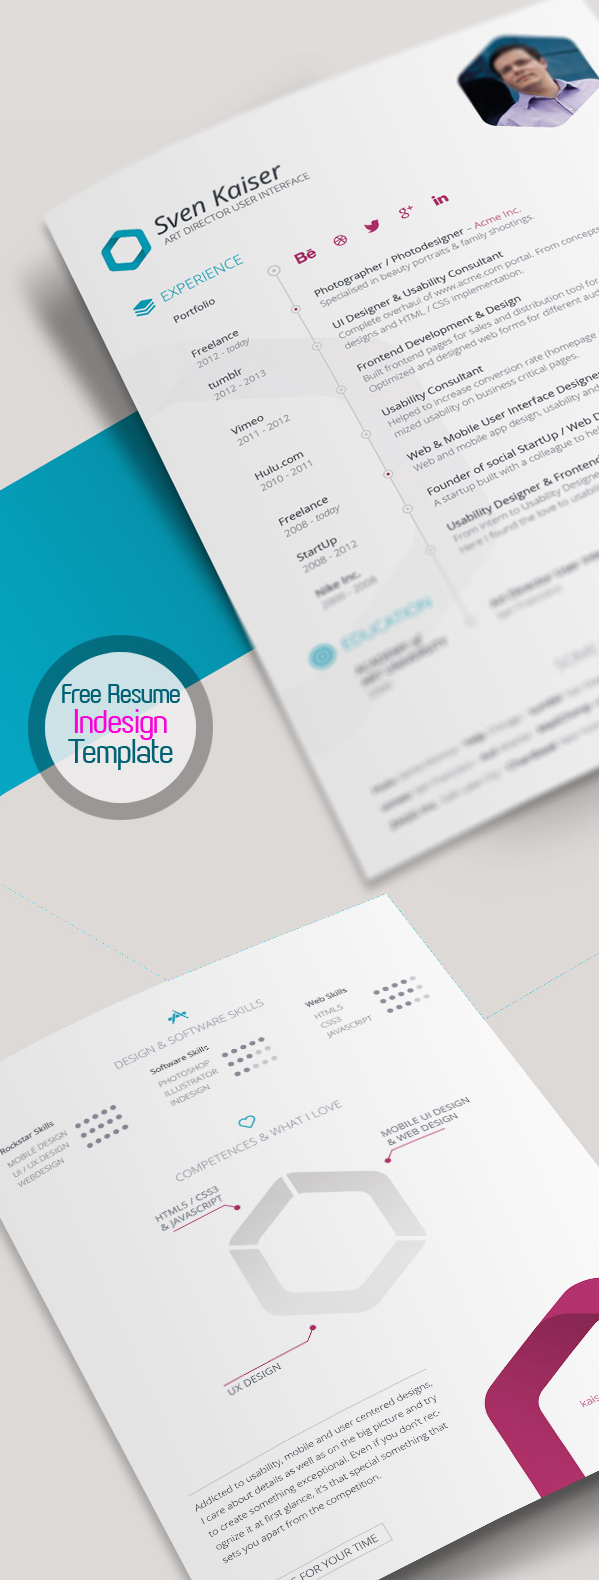 modern resume templates psd mockups bies graphic resume template for indesign vita cv